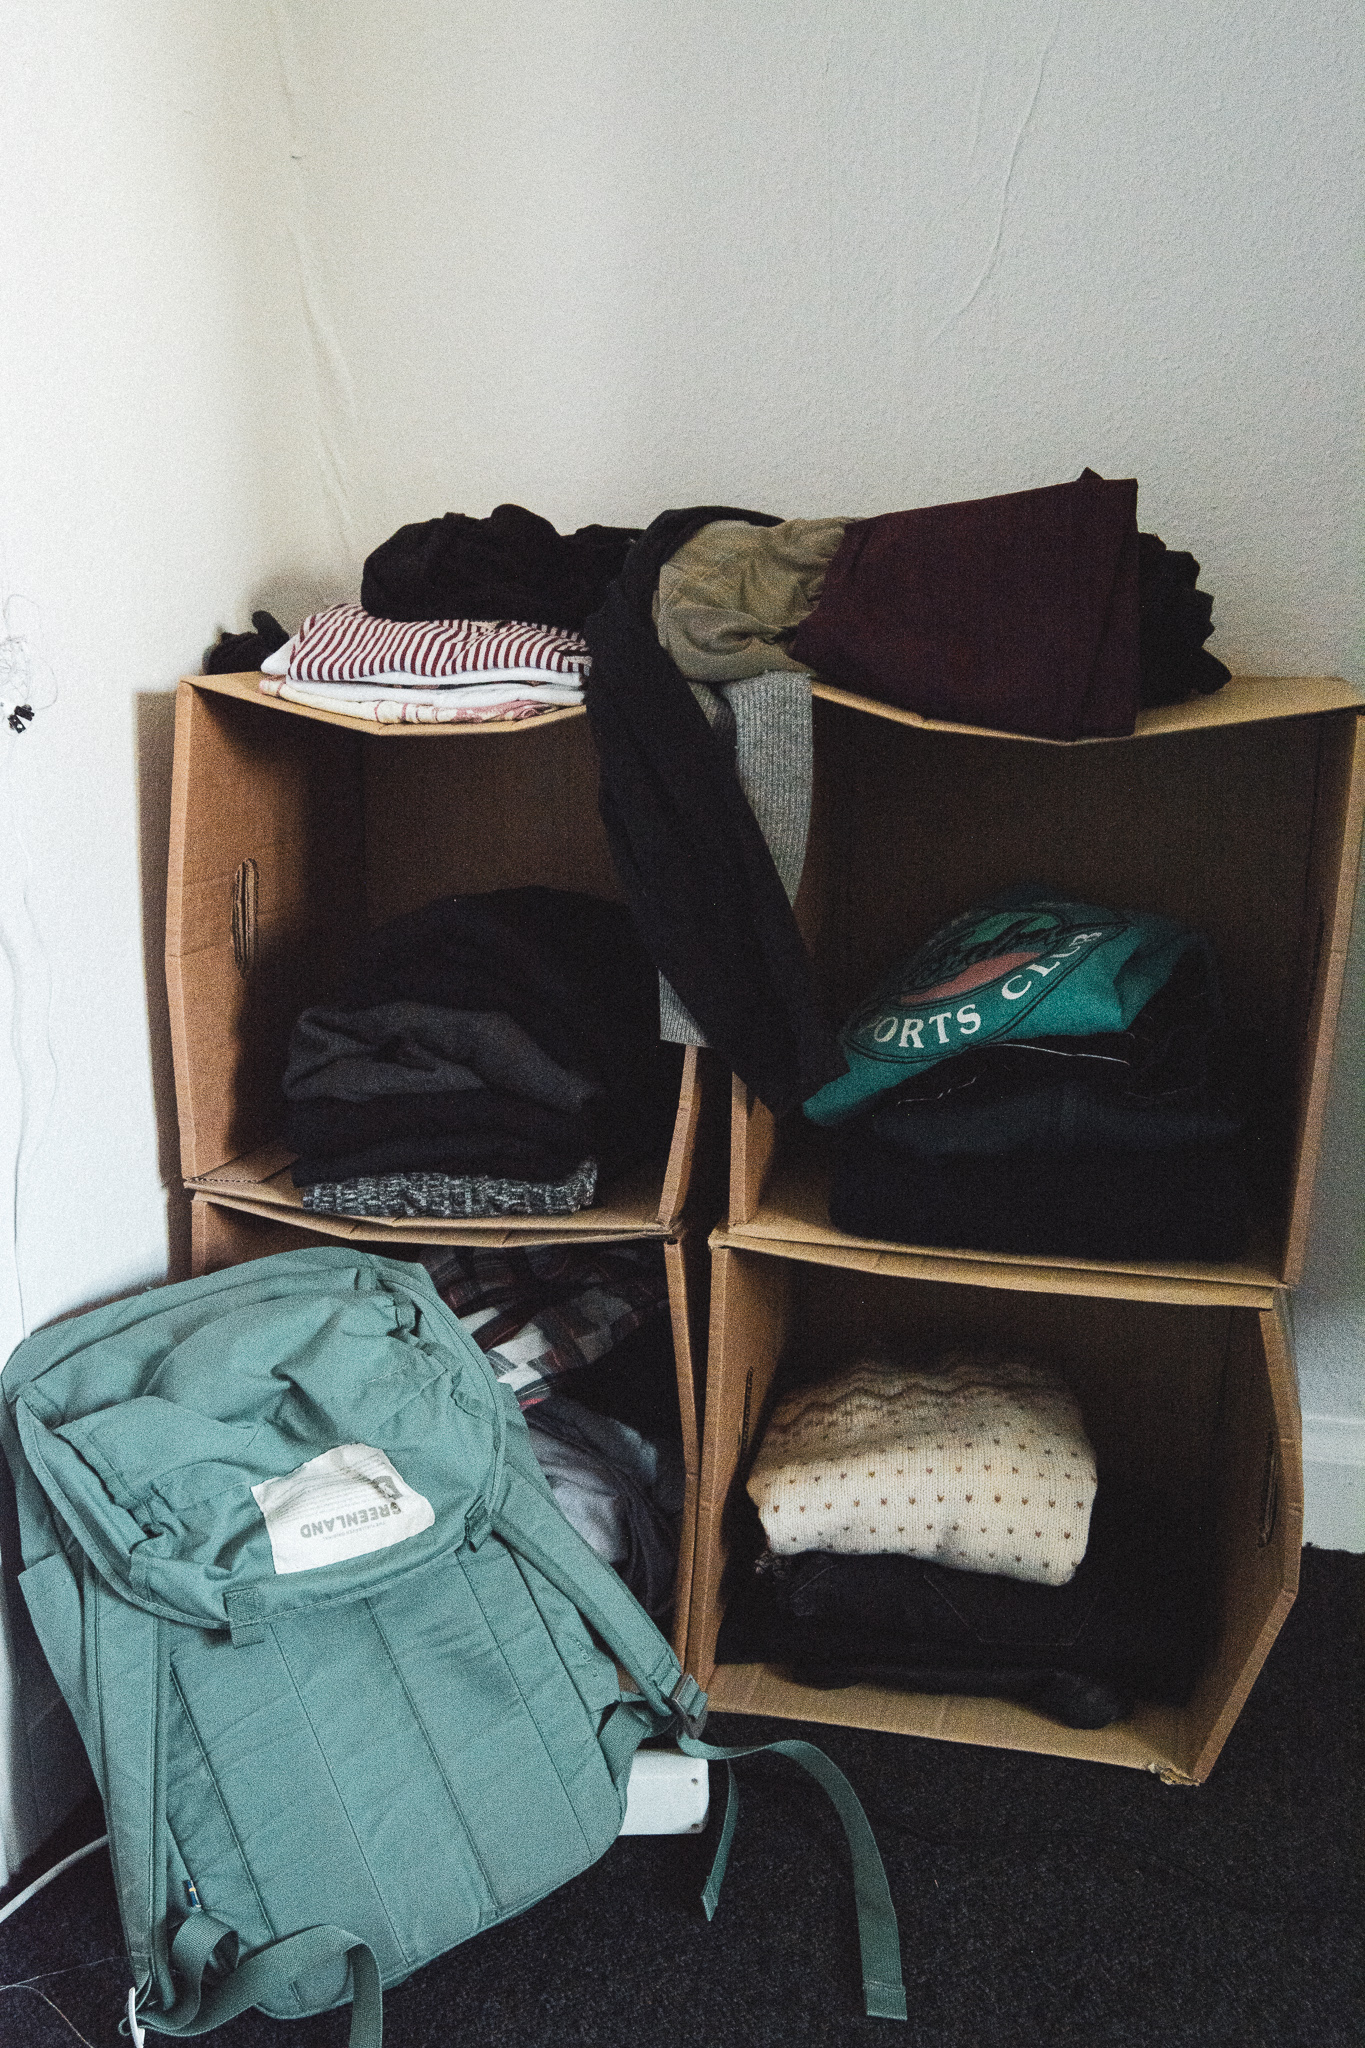 boxes, shelf, kasser, papkasser, reol, tøj, clothes, backpack, rygsæk, stories by holst